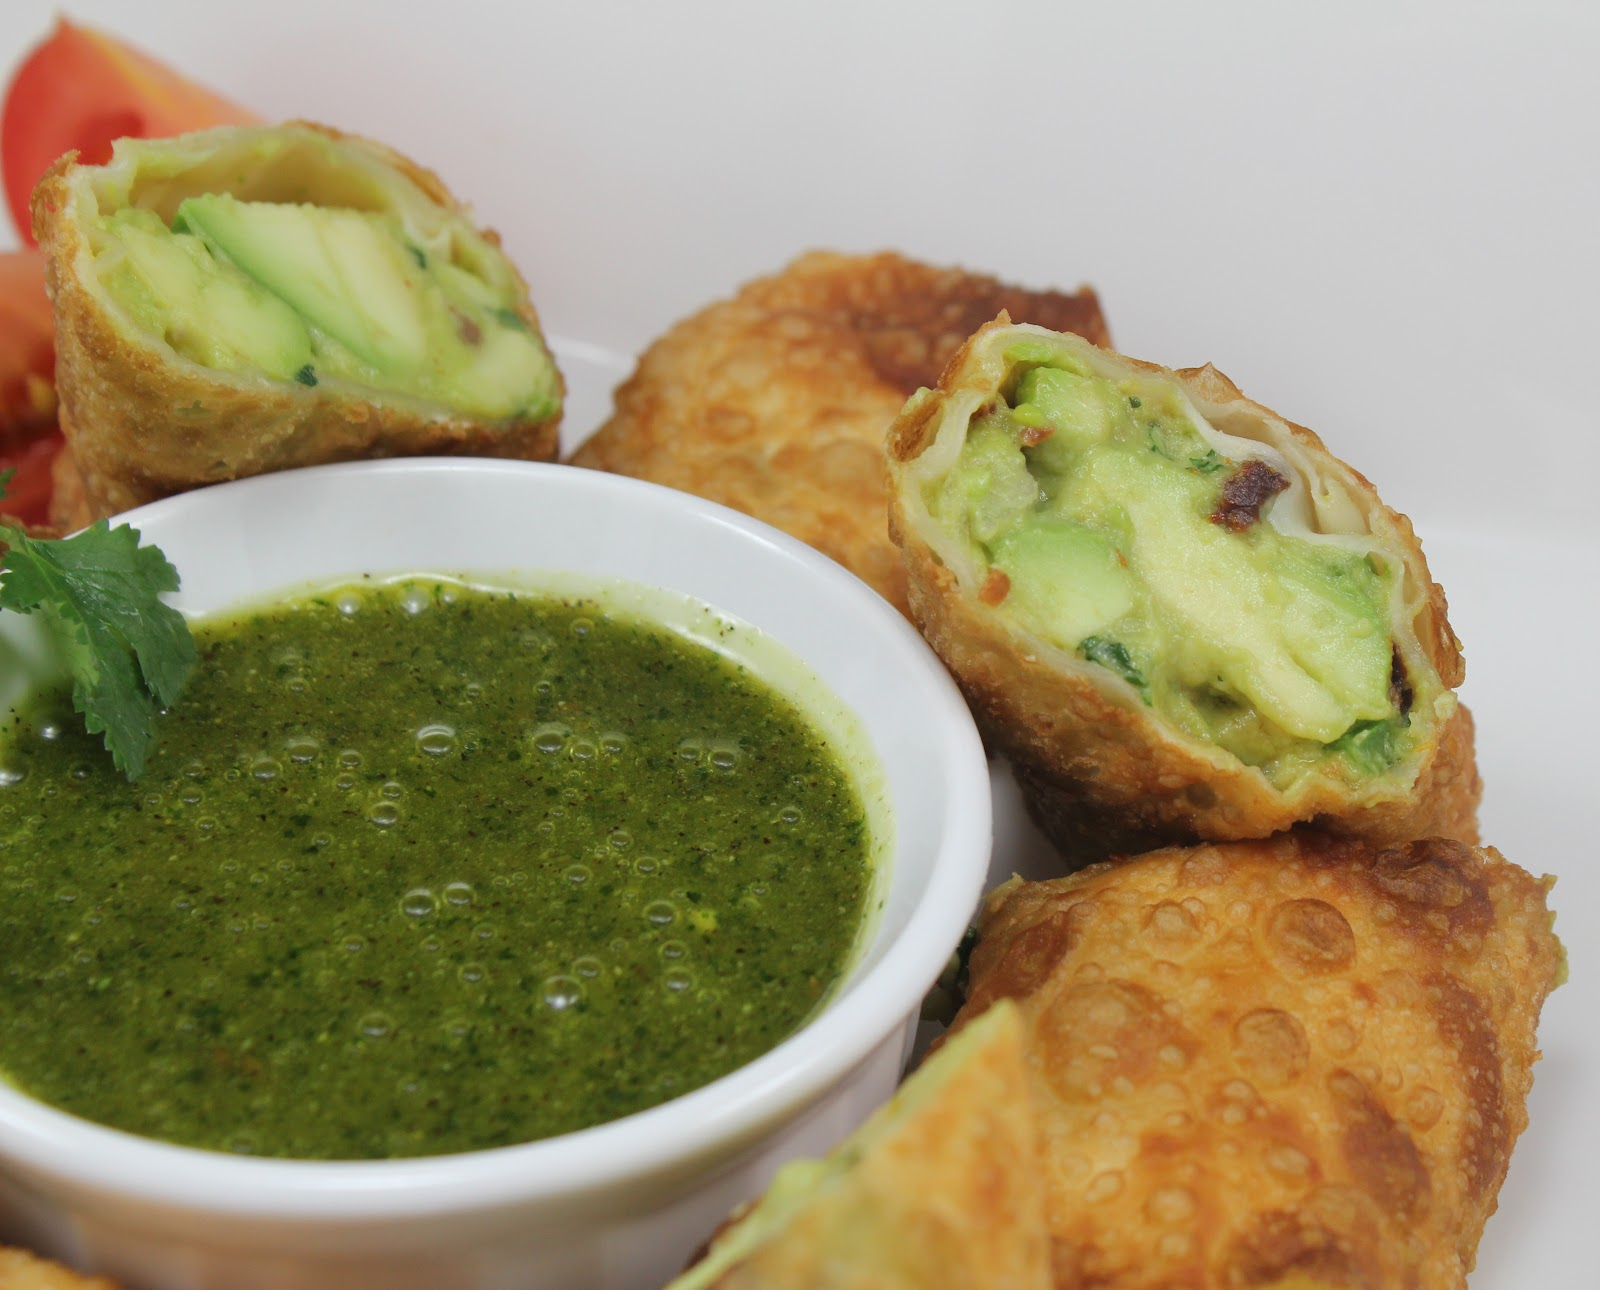 Thyme In Our Kitchen: Avocado Egg Rolls with Cilantro ...